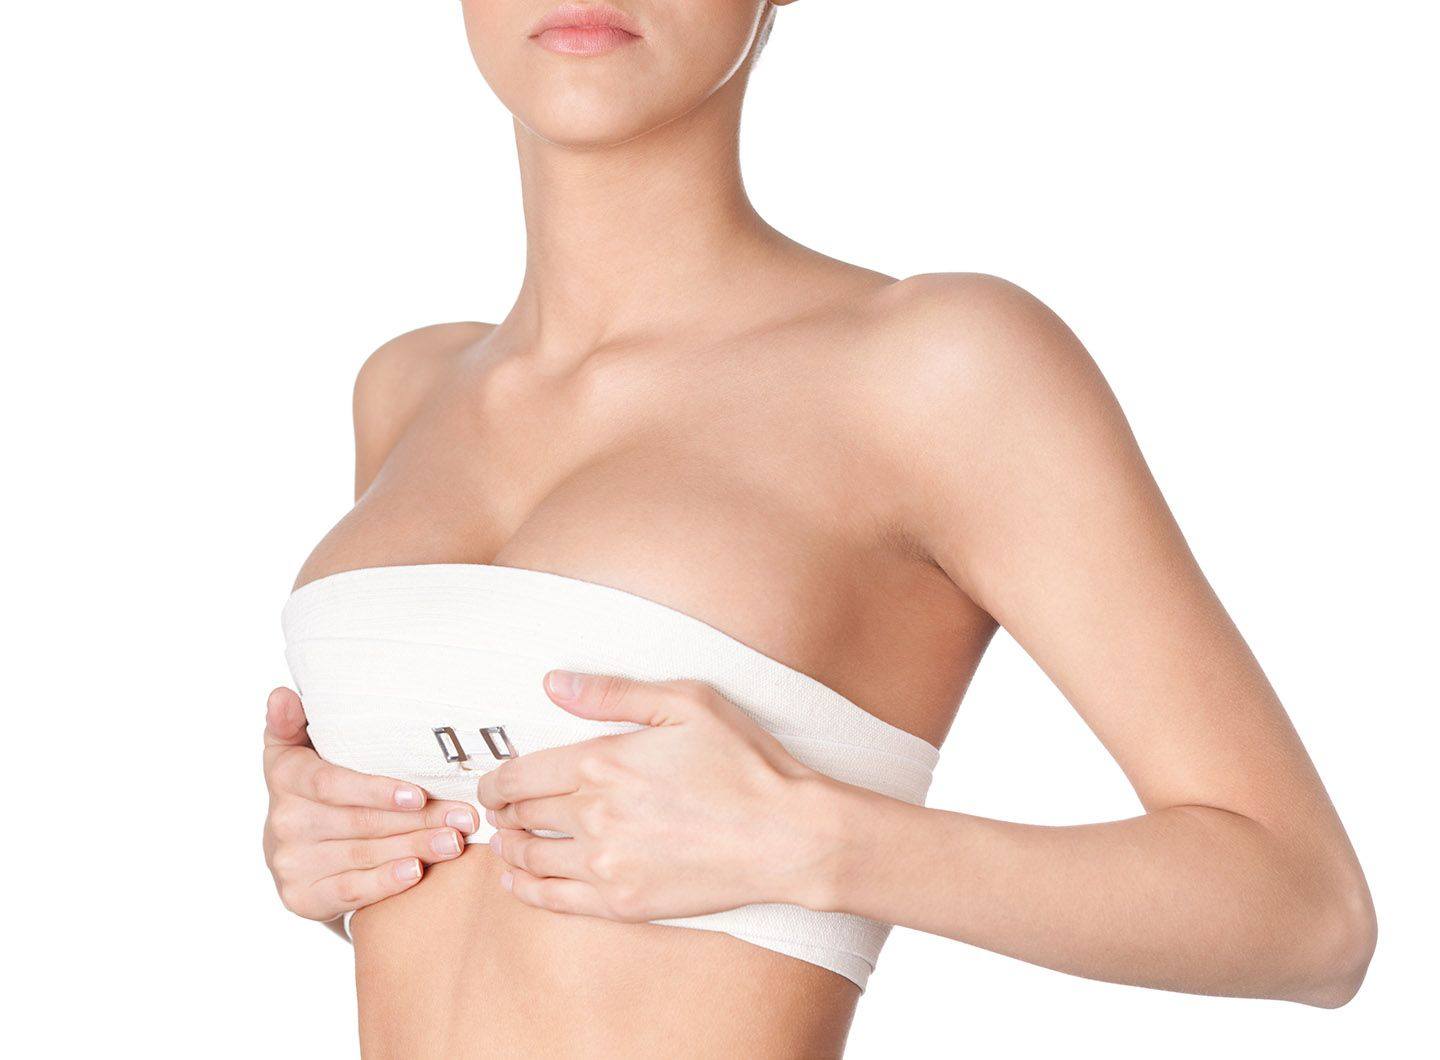 Woman wearing compression bandage around breasts.